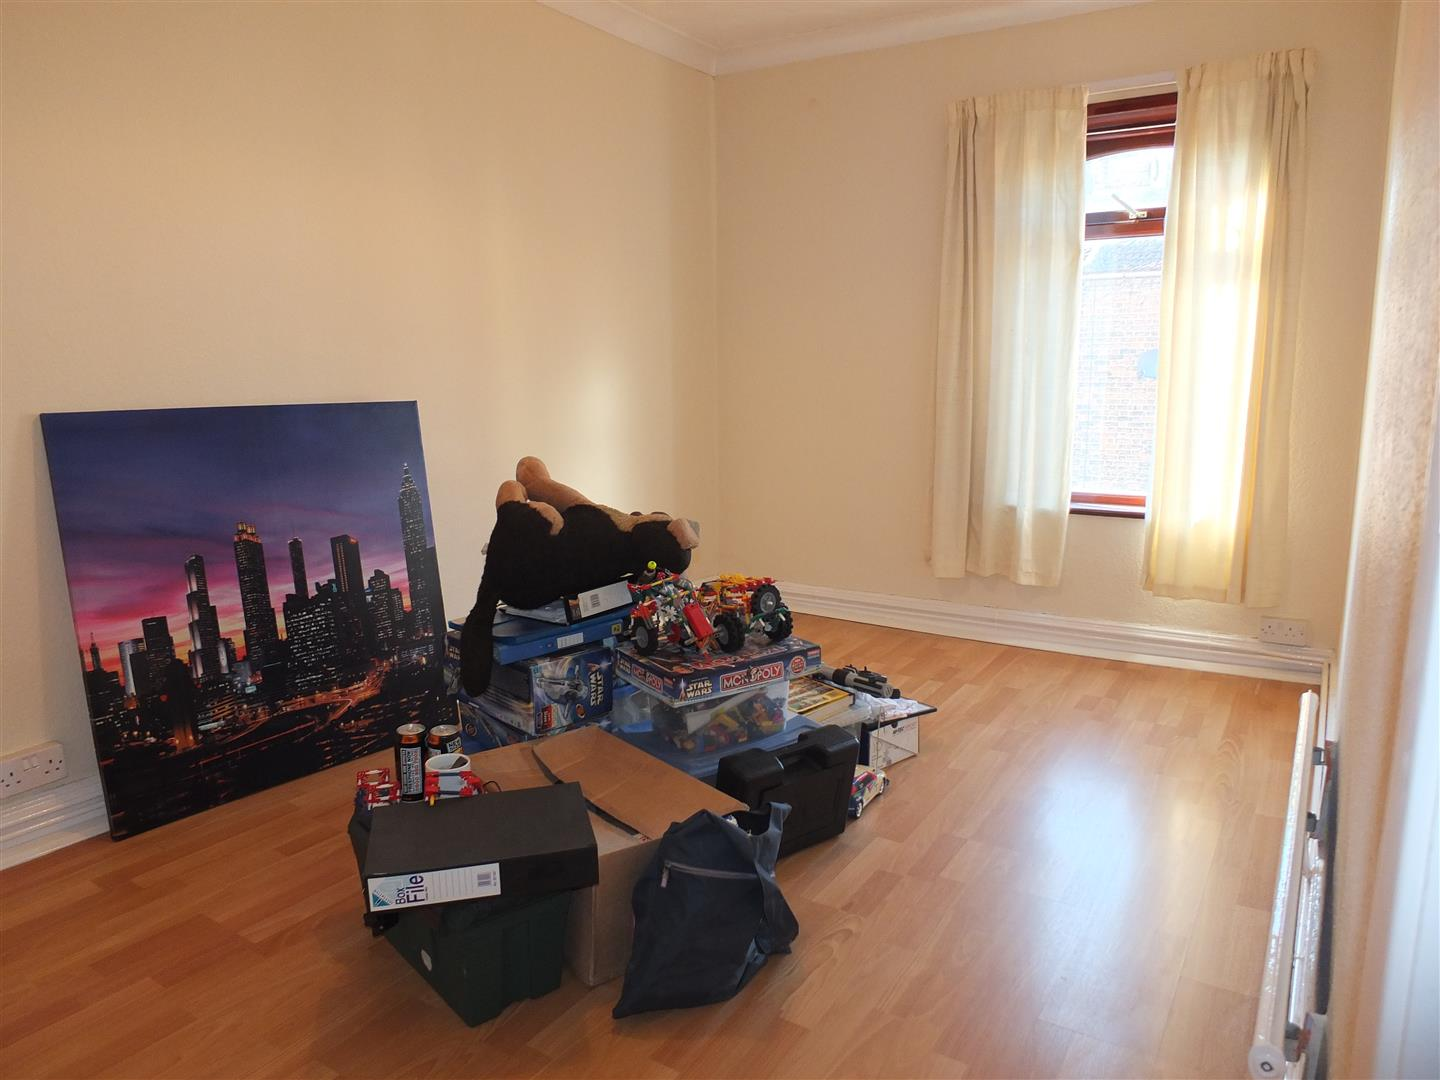 3 bed house to rent in Sutton Bridge Spalding, PE12 9UJ  - Property Image 7